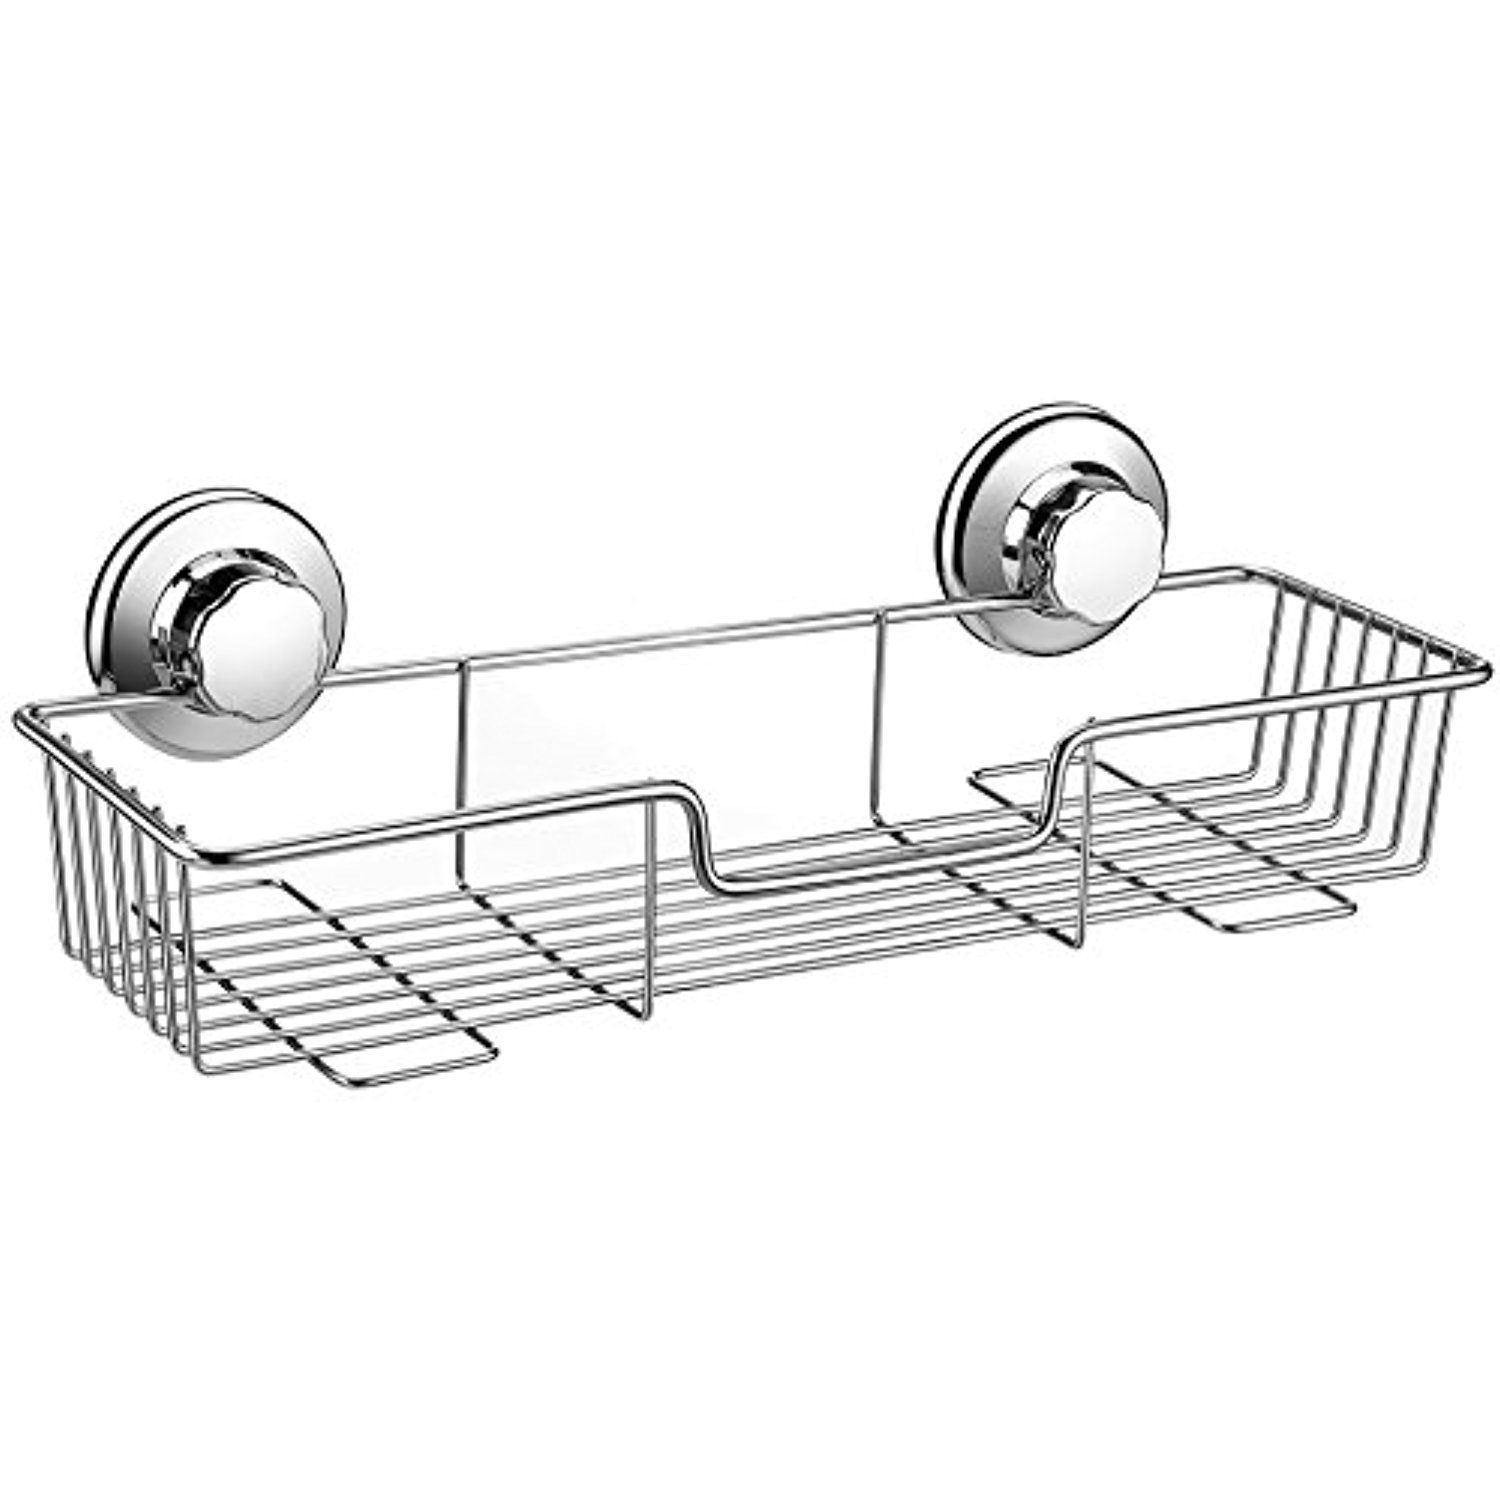 iPEGTOP Vacuum Suction Cup Shower Caddy Shelf Storage Basket Bath ...